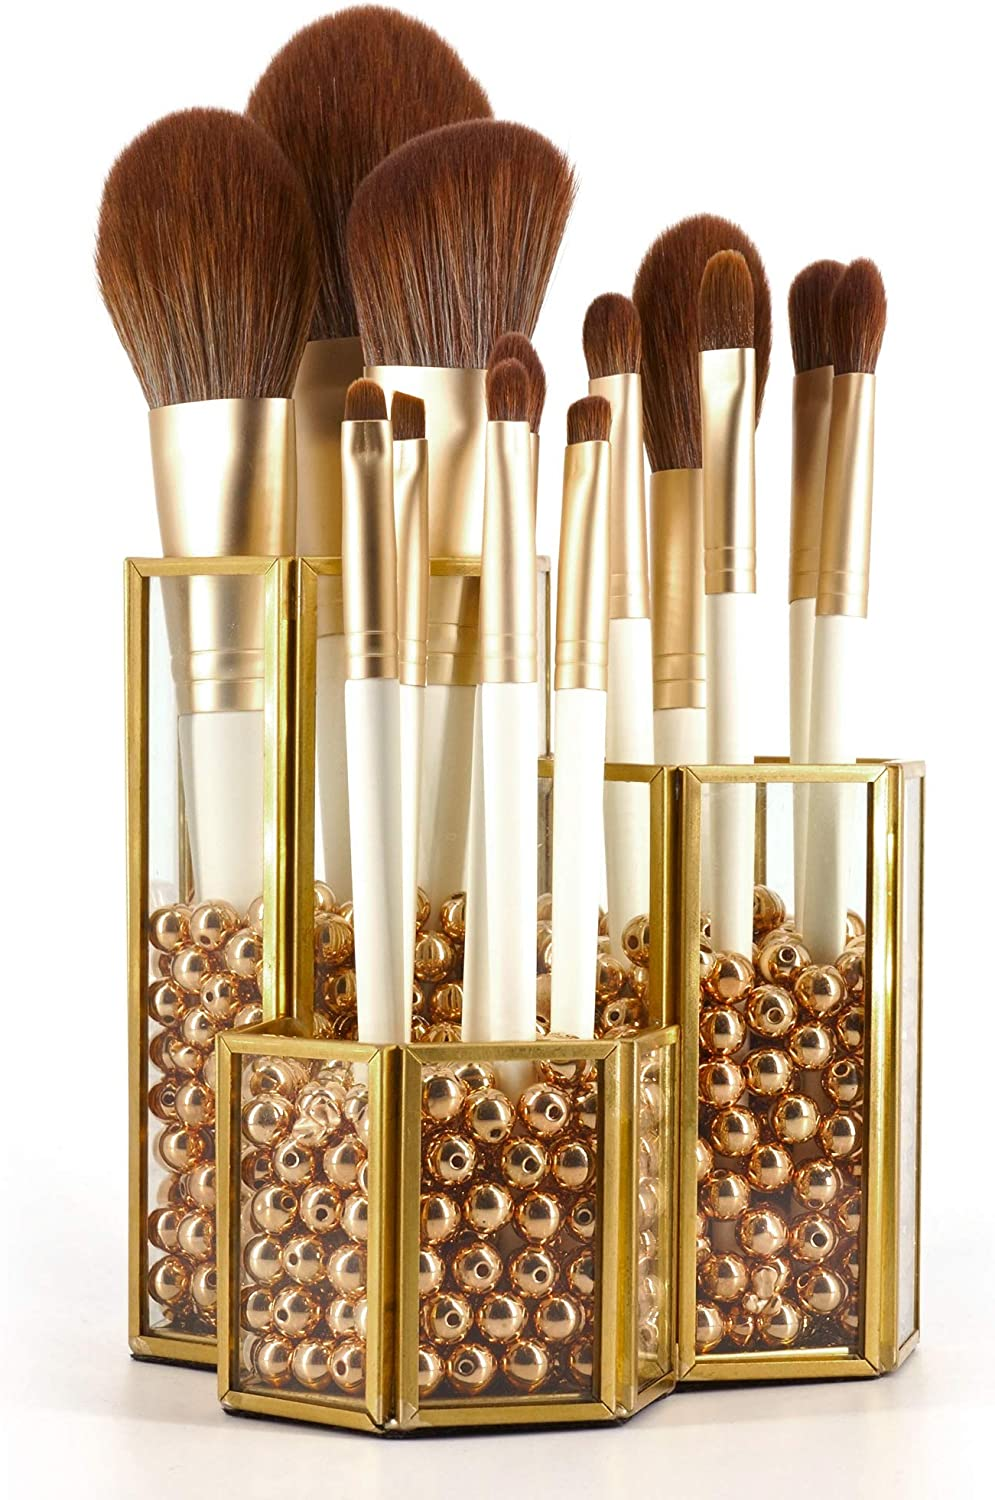 Crowned Gold Glass Makeup Brush Holder Handmade, 3 Slot Copper Desk Organizer Desktop Clear Cosmetics Organizer Lipstick Storage, with Free Pearls - 001